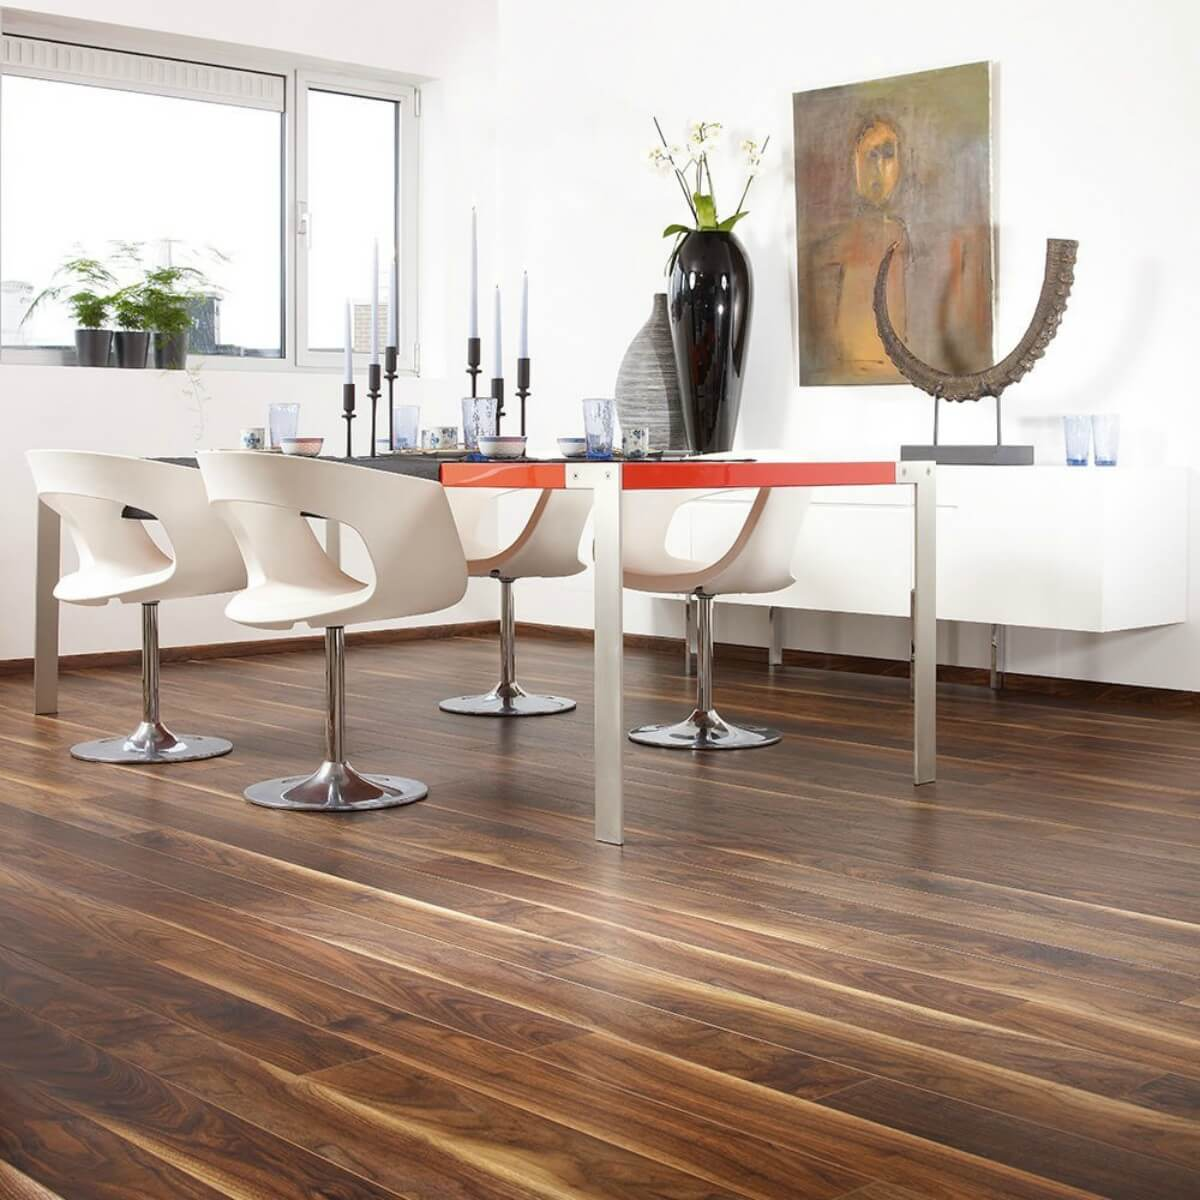 Buying Cheap Wood Flooring Doesn't Have to Mean Sacrificing on Quality - One